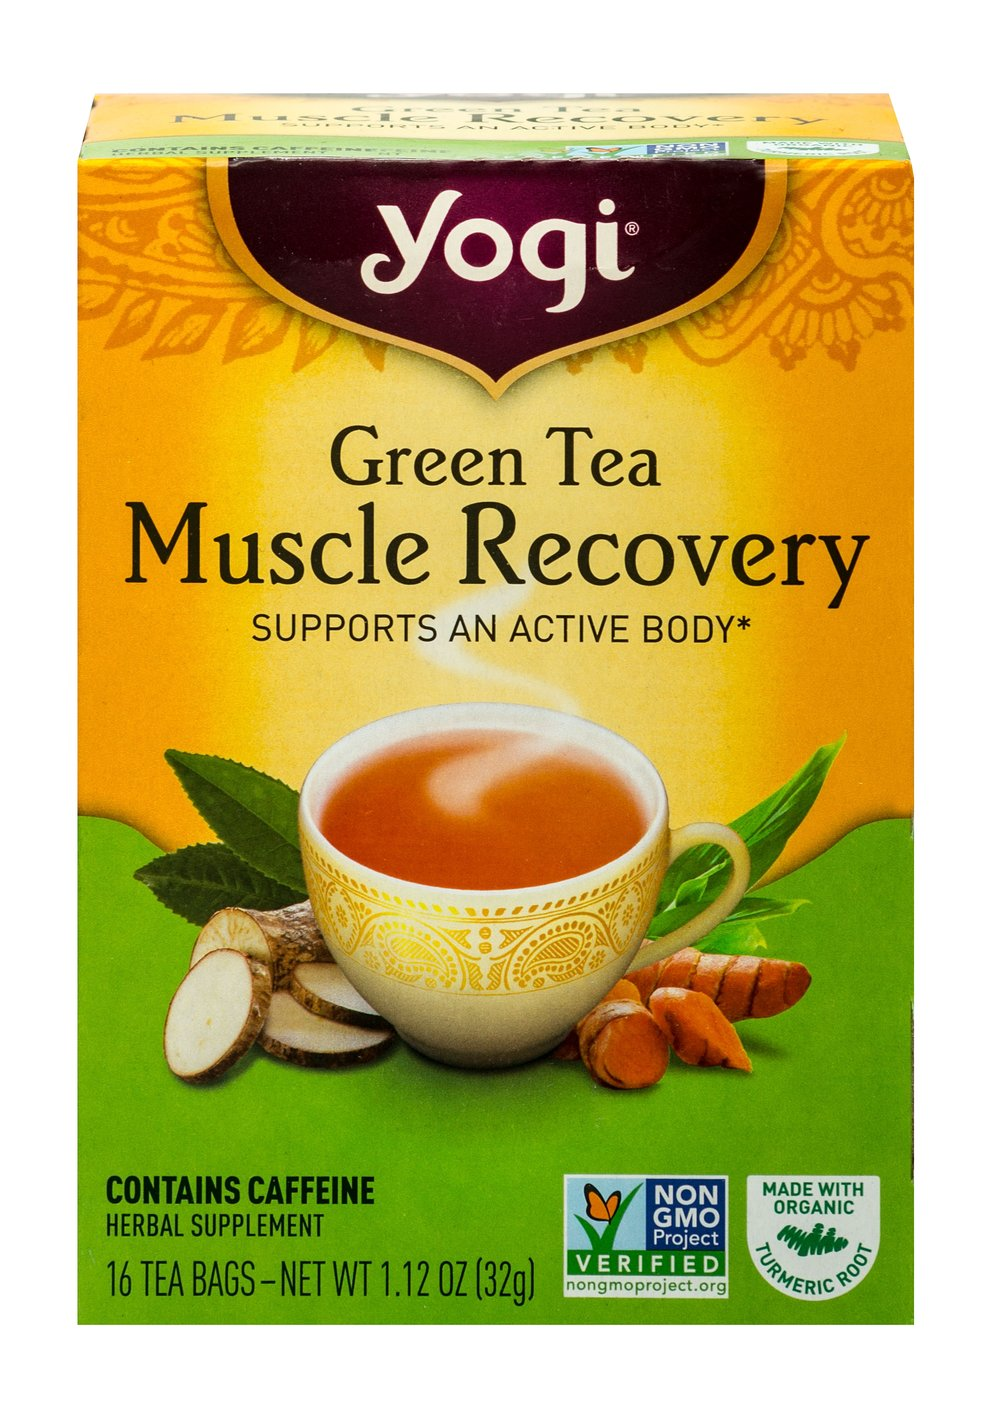 Green Tea Muscle Recovery <p><strong>From the Manufacturer's Label:</strong></p><p>Stay active with a cup of Green Tea Muscle Recovery.  Our satisfying blend starts with gently stimulating and antioxidant-rich Green Tea and combines it with traditional soothing herbs such as Organic Turmeric Root. So get invigorated, be energized, and stay active with Green Tea Muscle Recovery!</p> 16 Tea Bags